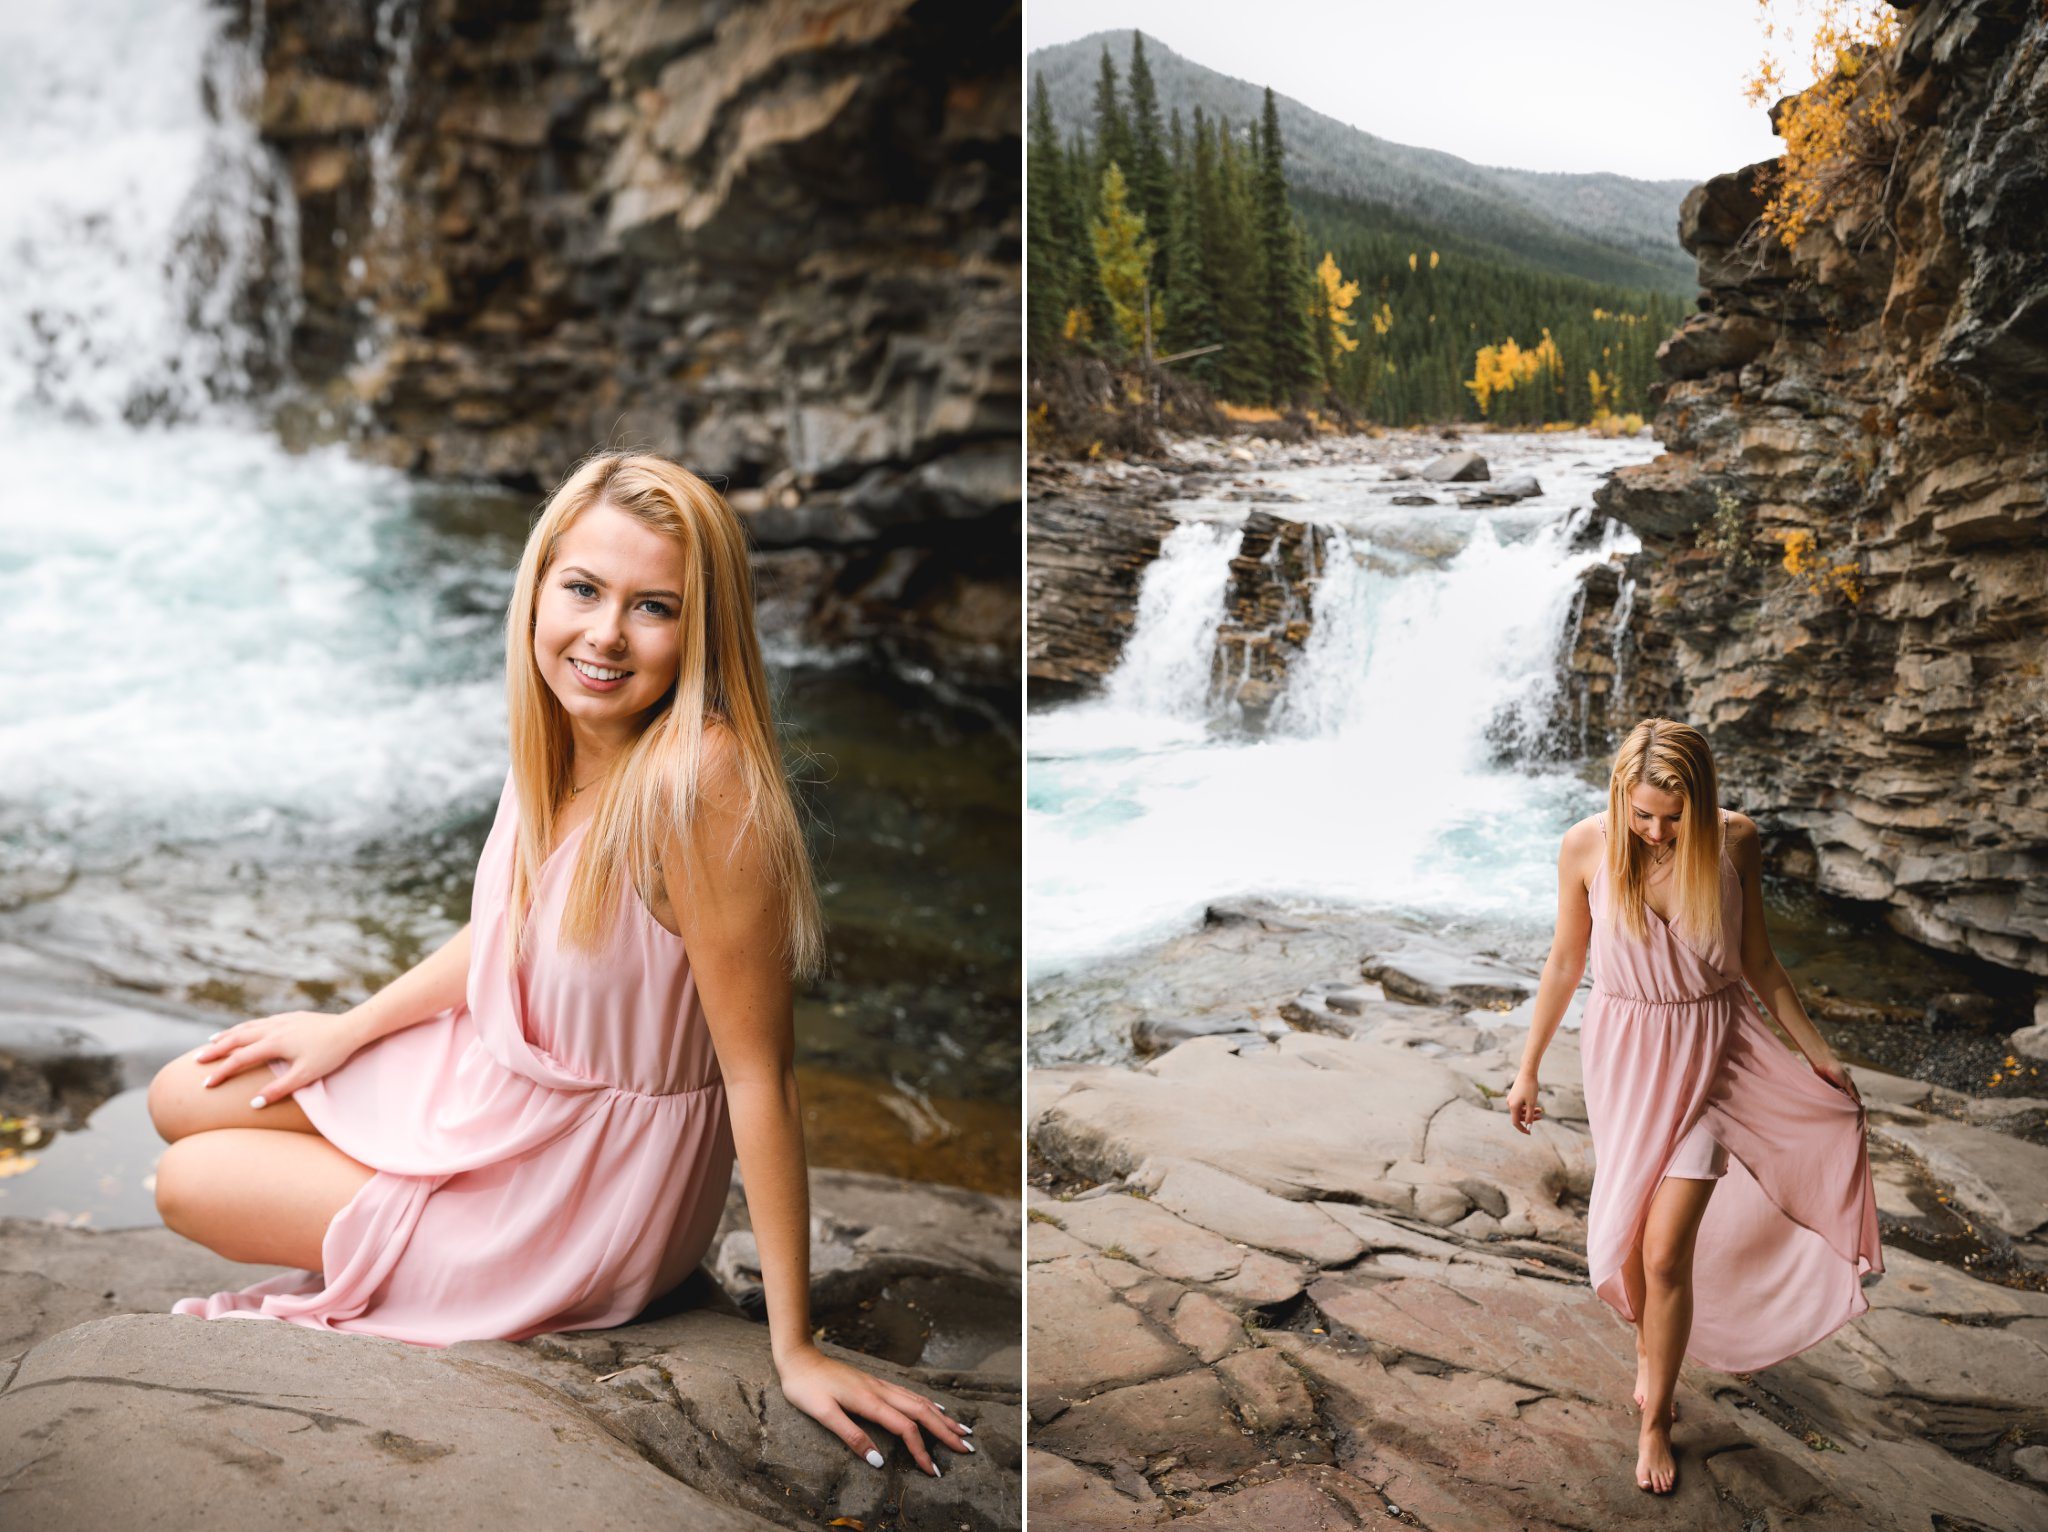 AshleyDaphnePhotography Calgary Photographer Wedding Family Senior Portraits Rocky Mountains Sheep River Falls Autumn Fall_0011.jpg